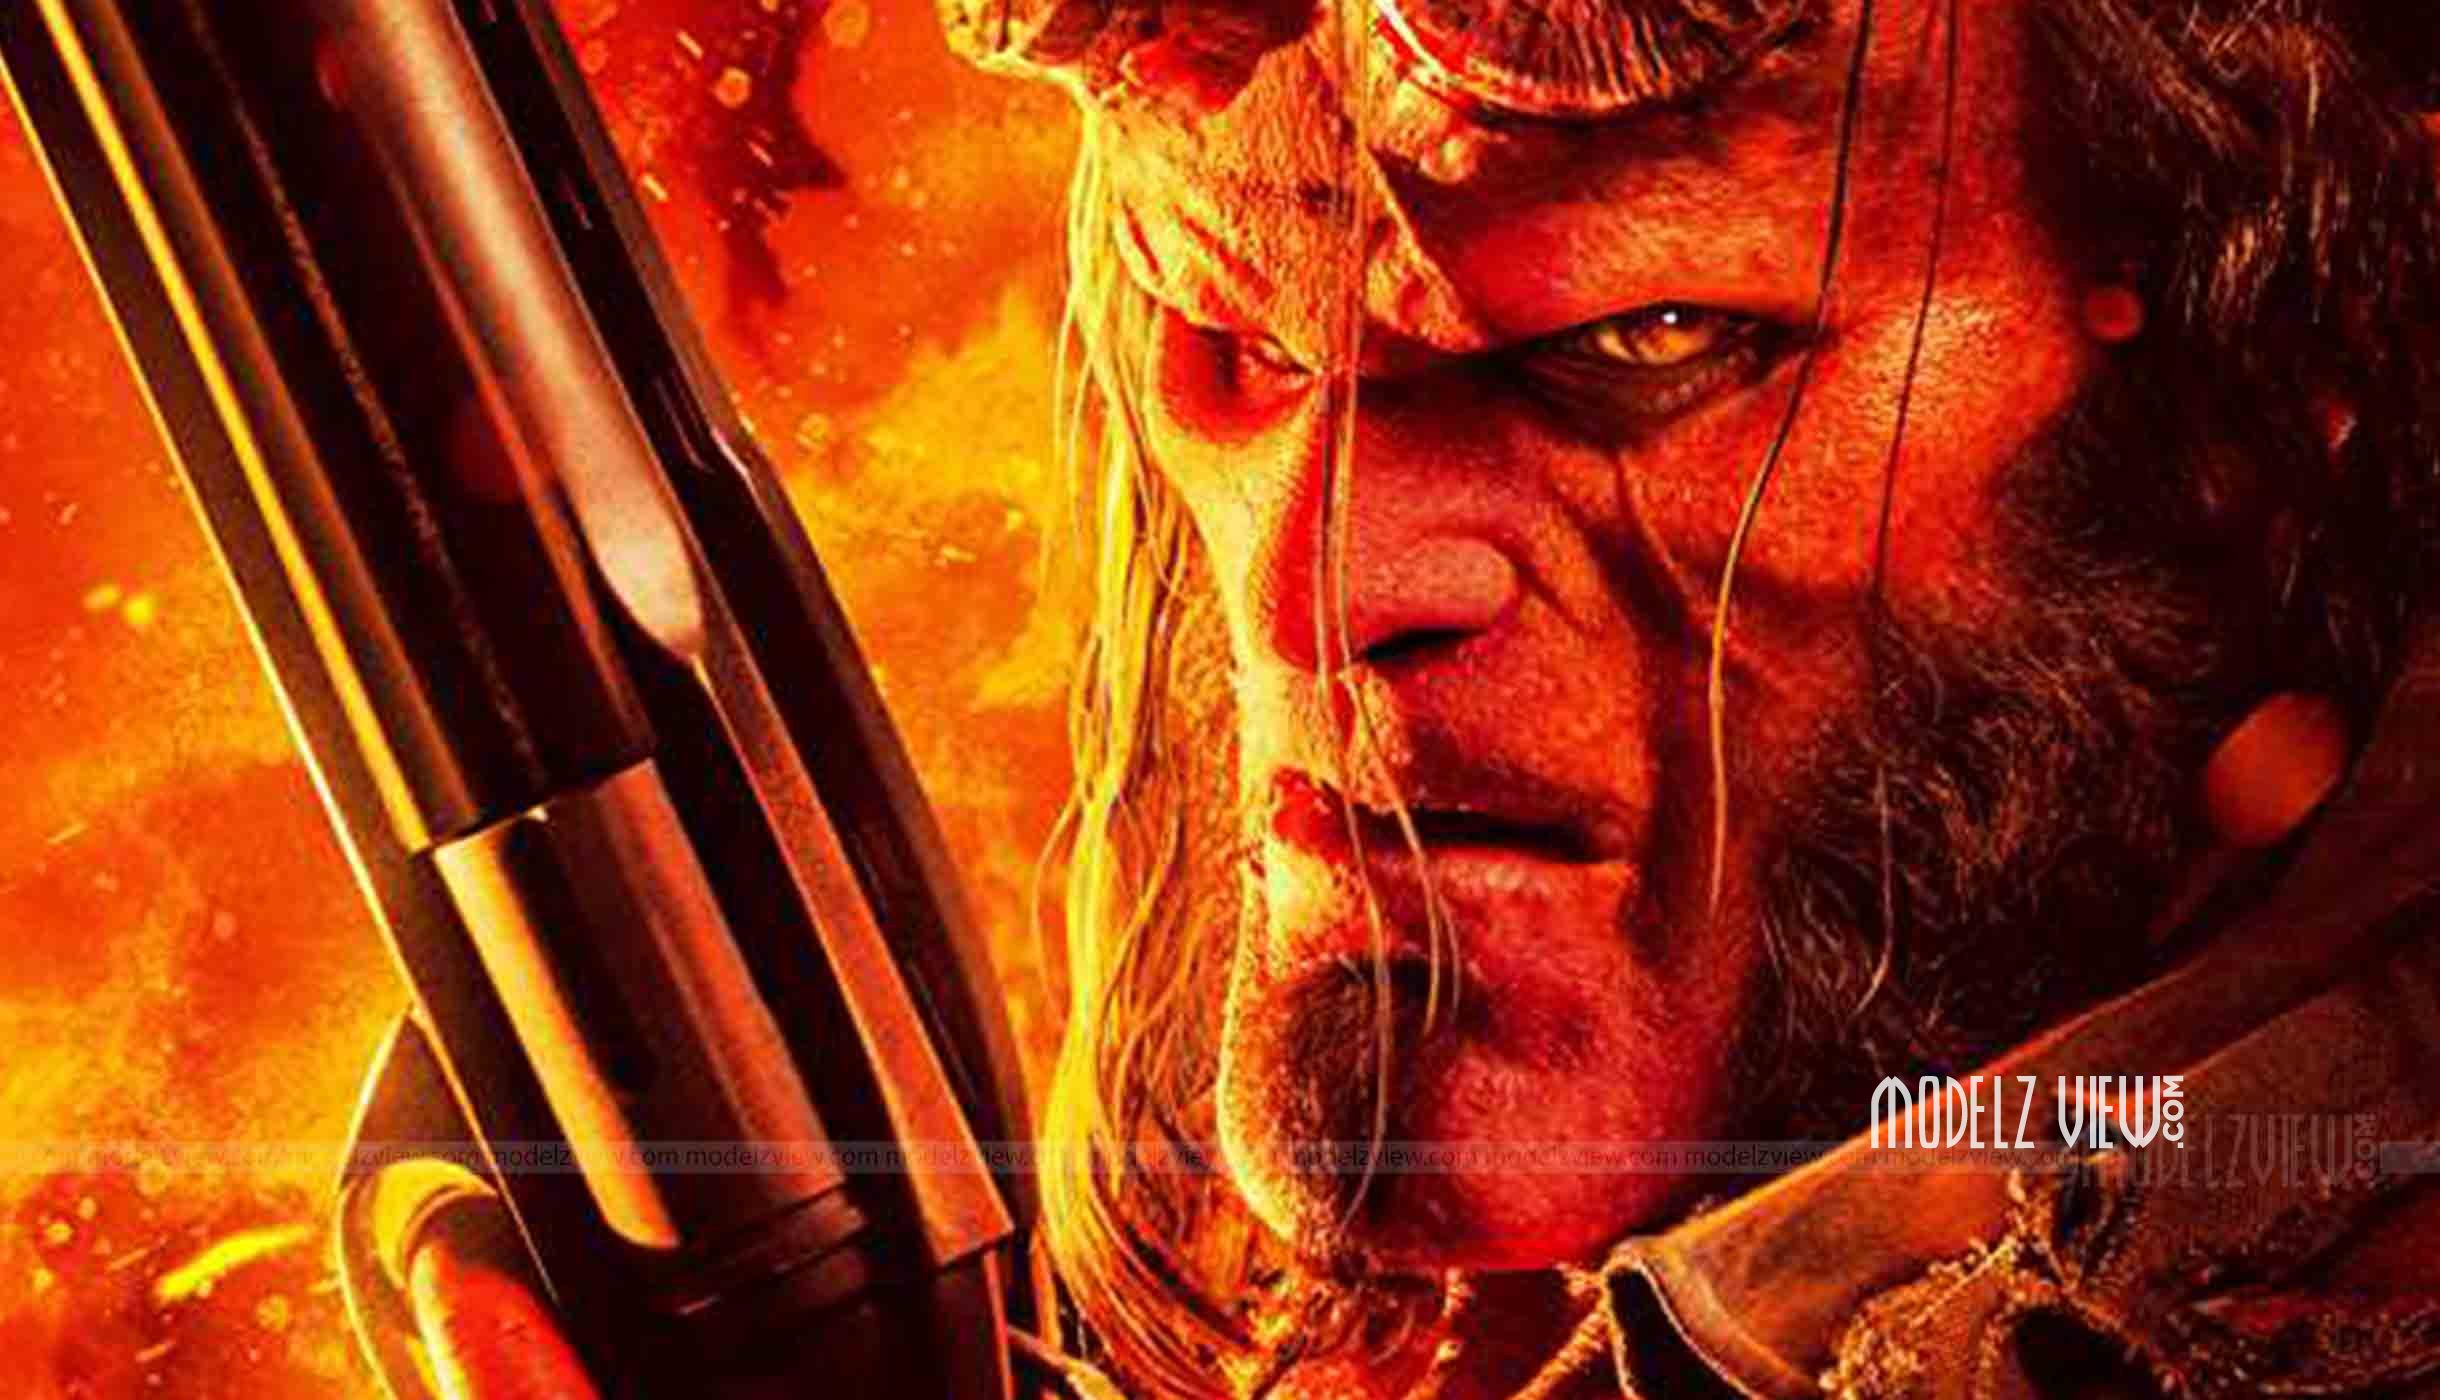 'Hellboy': release date, trailer, cast, and everything we know so far